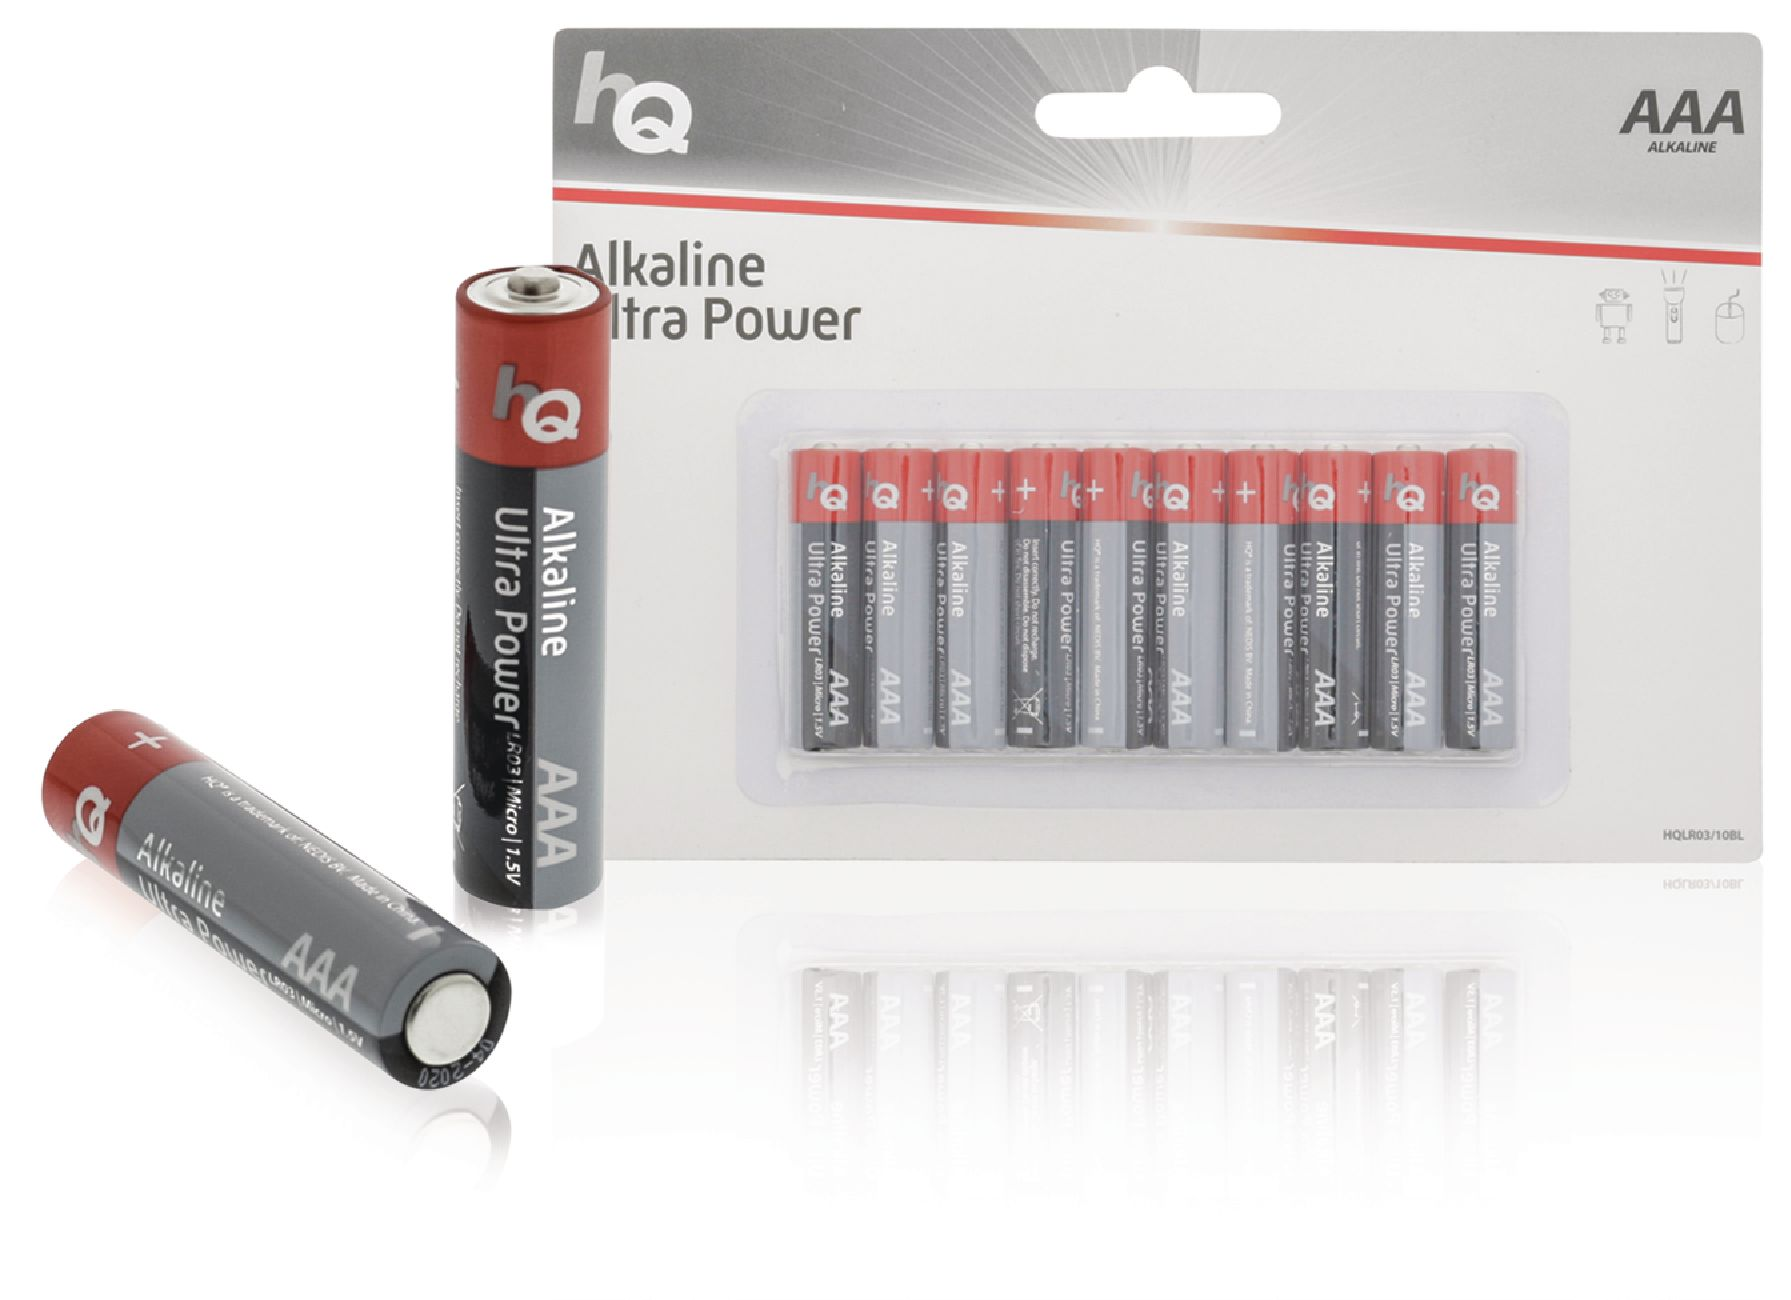 Alkalická baterie HQ Ultra Power AAA 1.5 V, 10ks, HQLR03/10BL